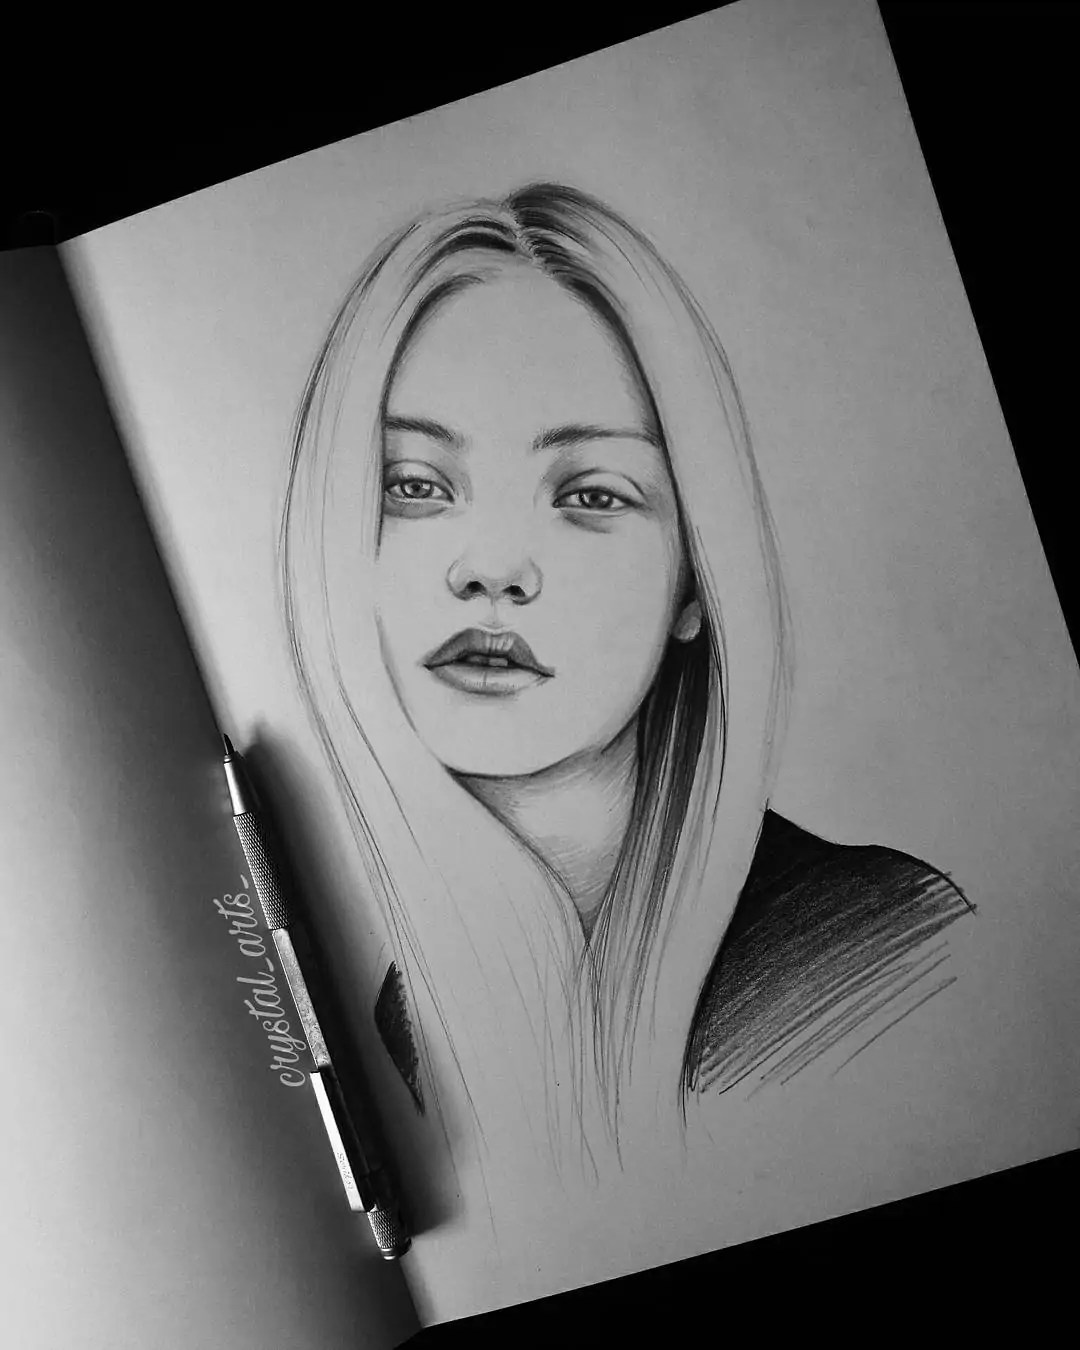 100+ Stunning Realistic Portrait Drawings 363